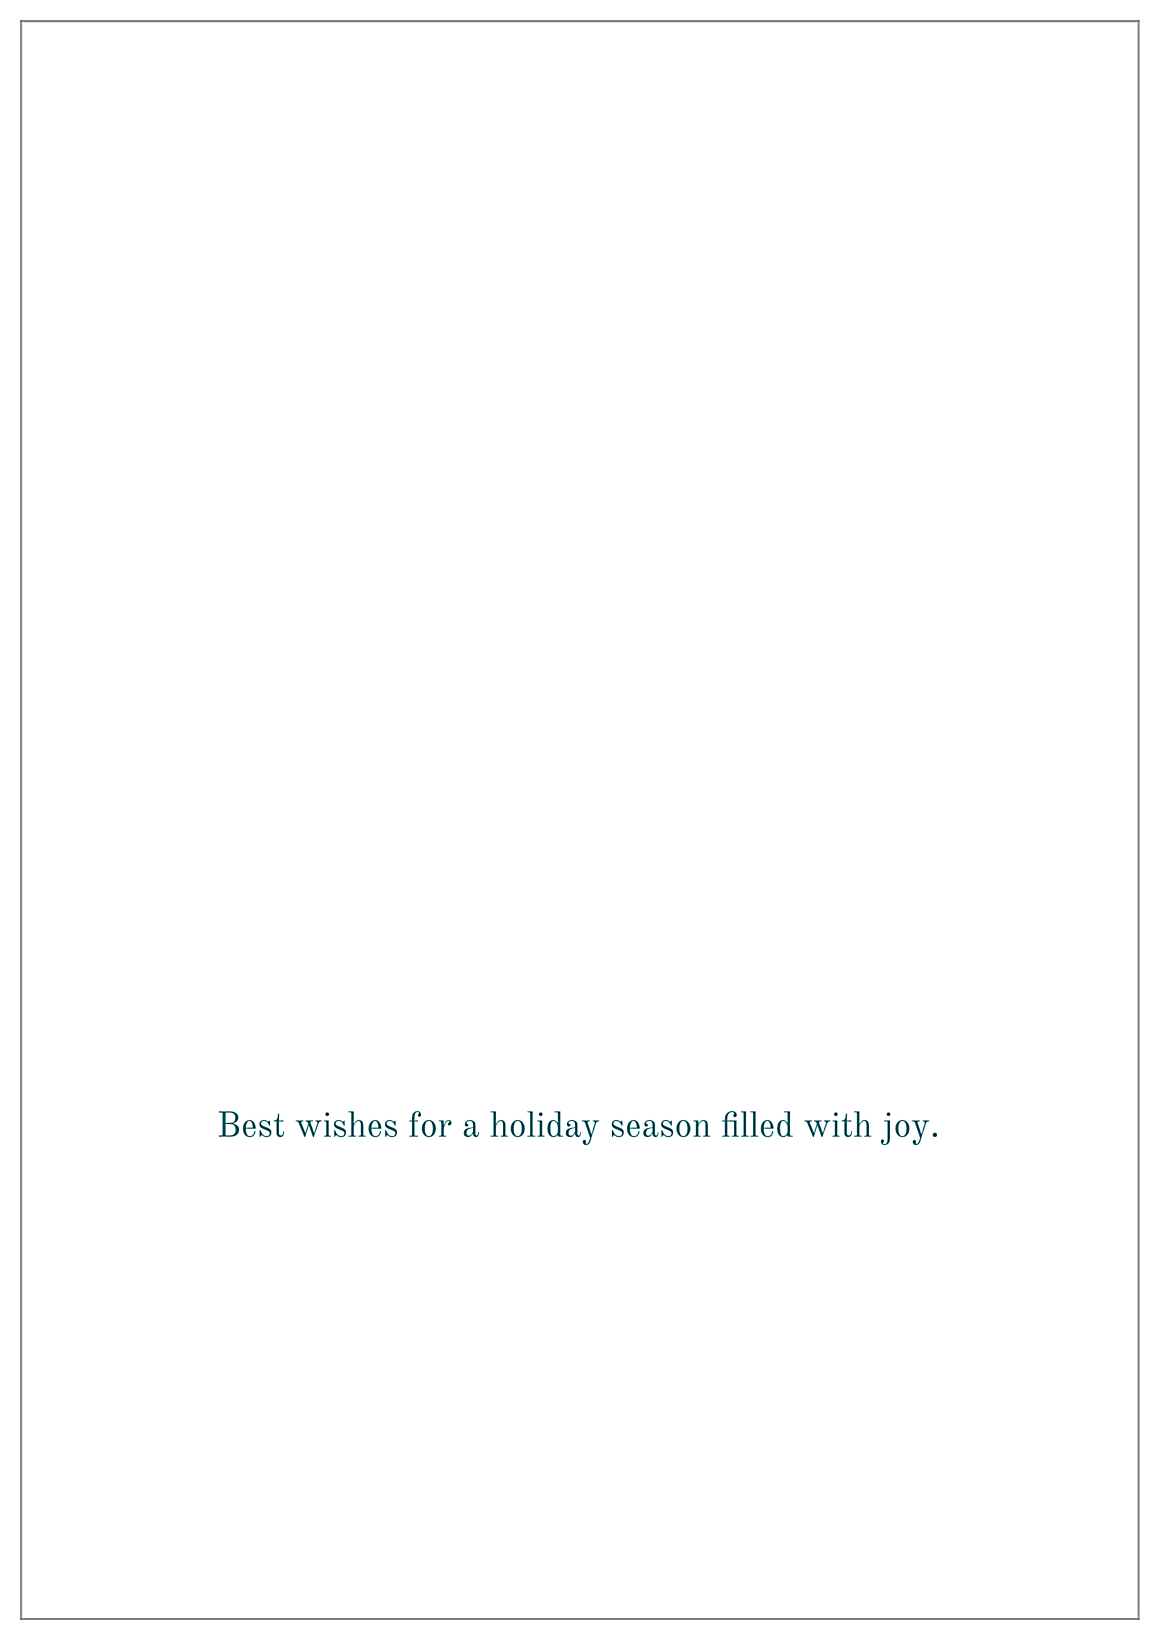 Merry Family back - Greeting Cards Maker